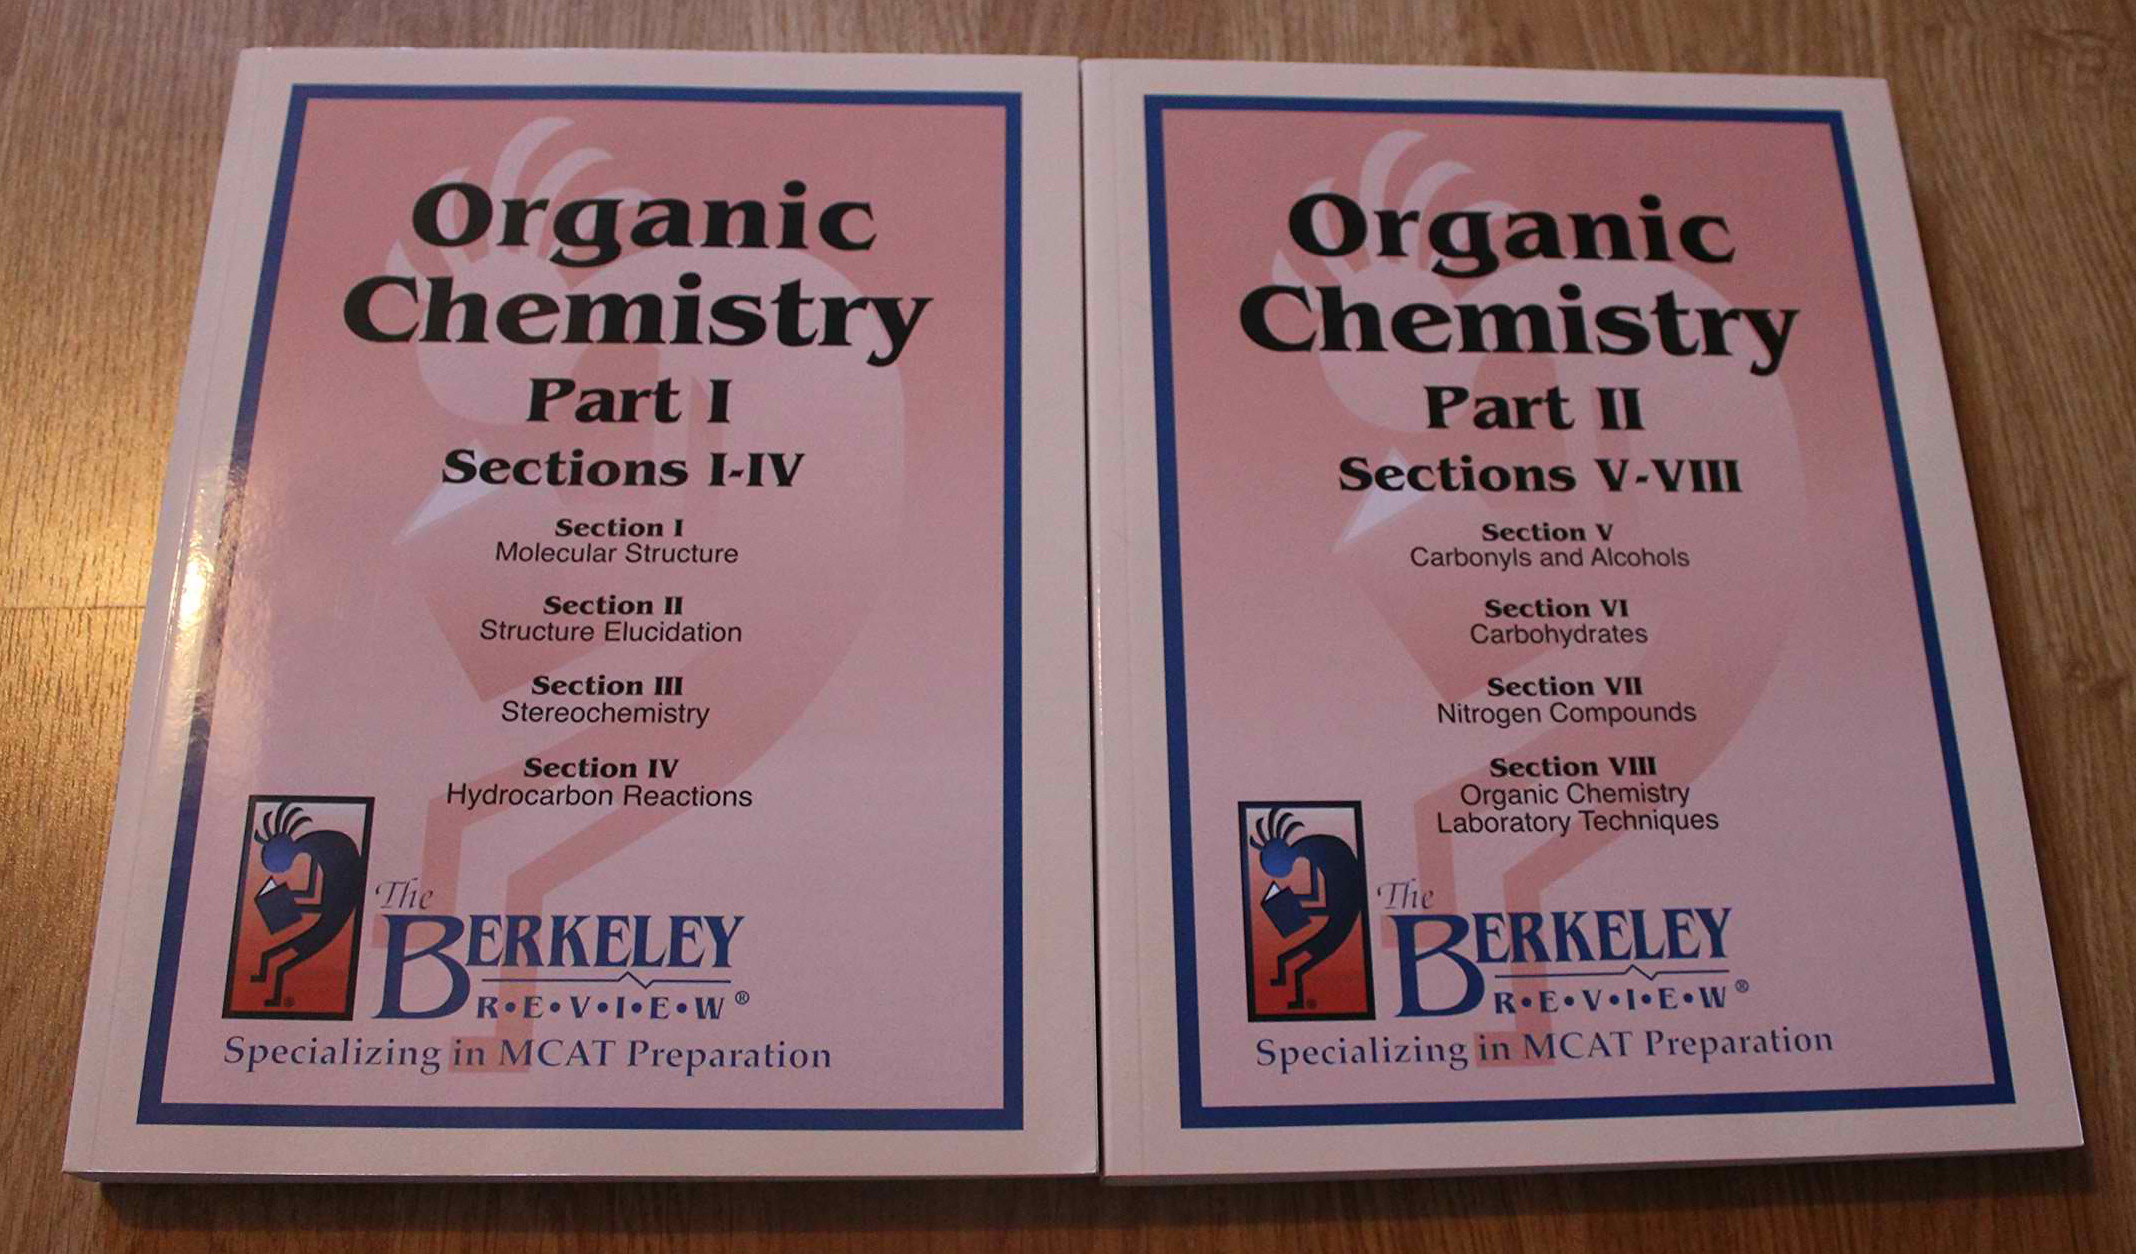 The Berkeley Review MCAT Organic Chemistry Book